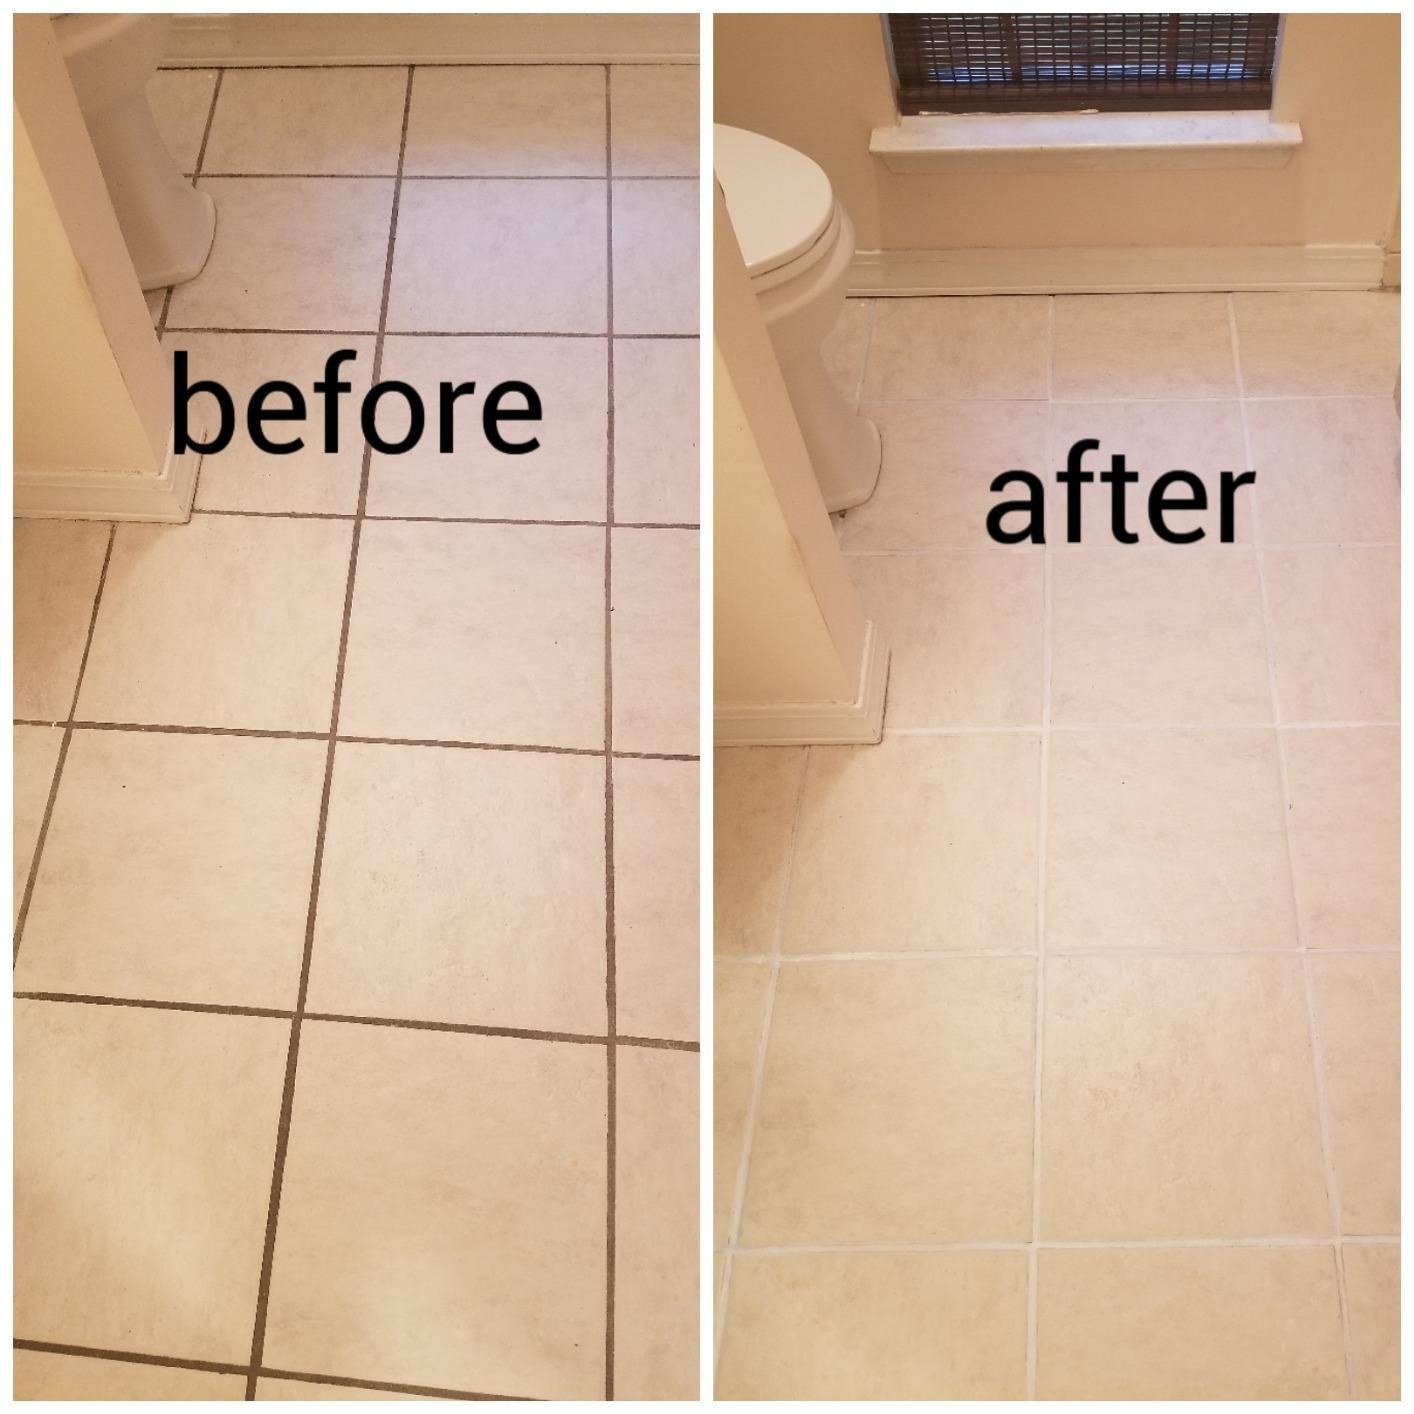 Tiles with brown grime in between and then looking cleaner after using the product